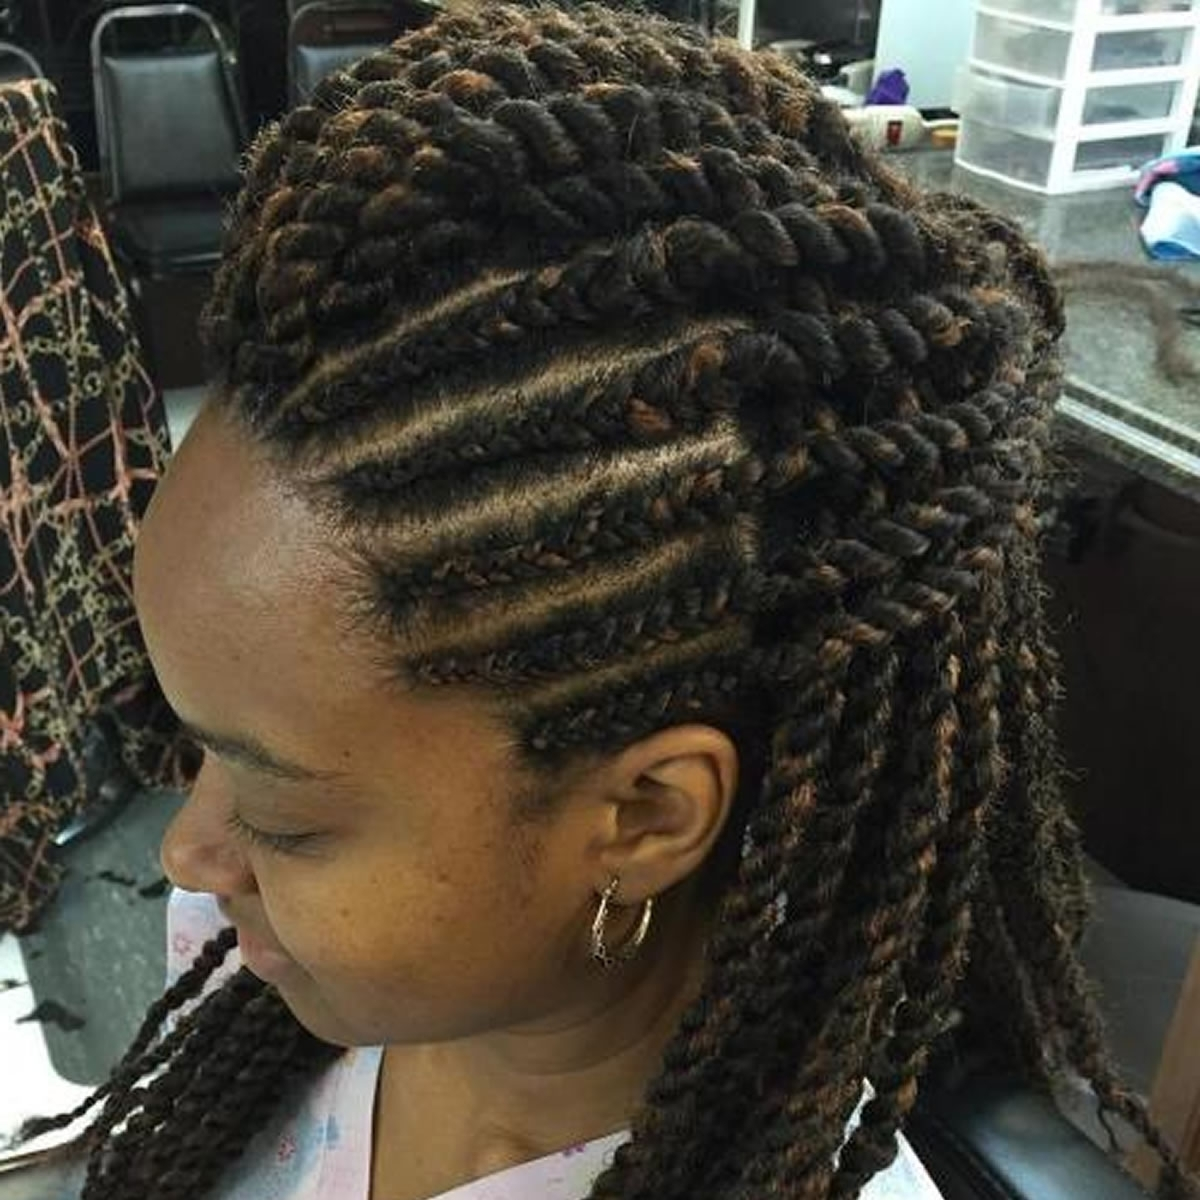 20 Best African American Braided Hairstyles For Women 2017 2018 For African Cornrows Updo Hairstyles (View 14 of 15)